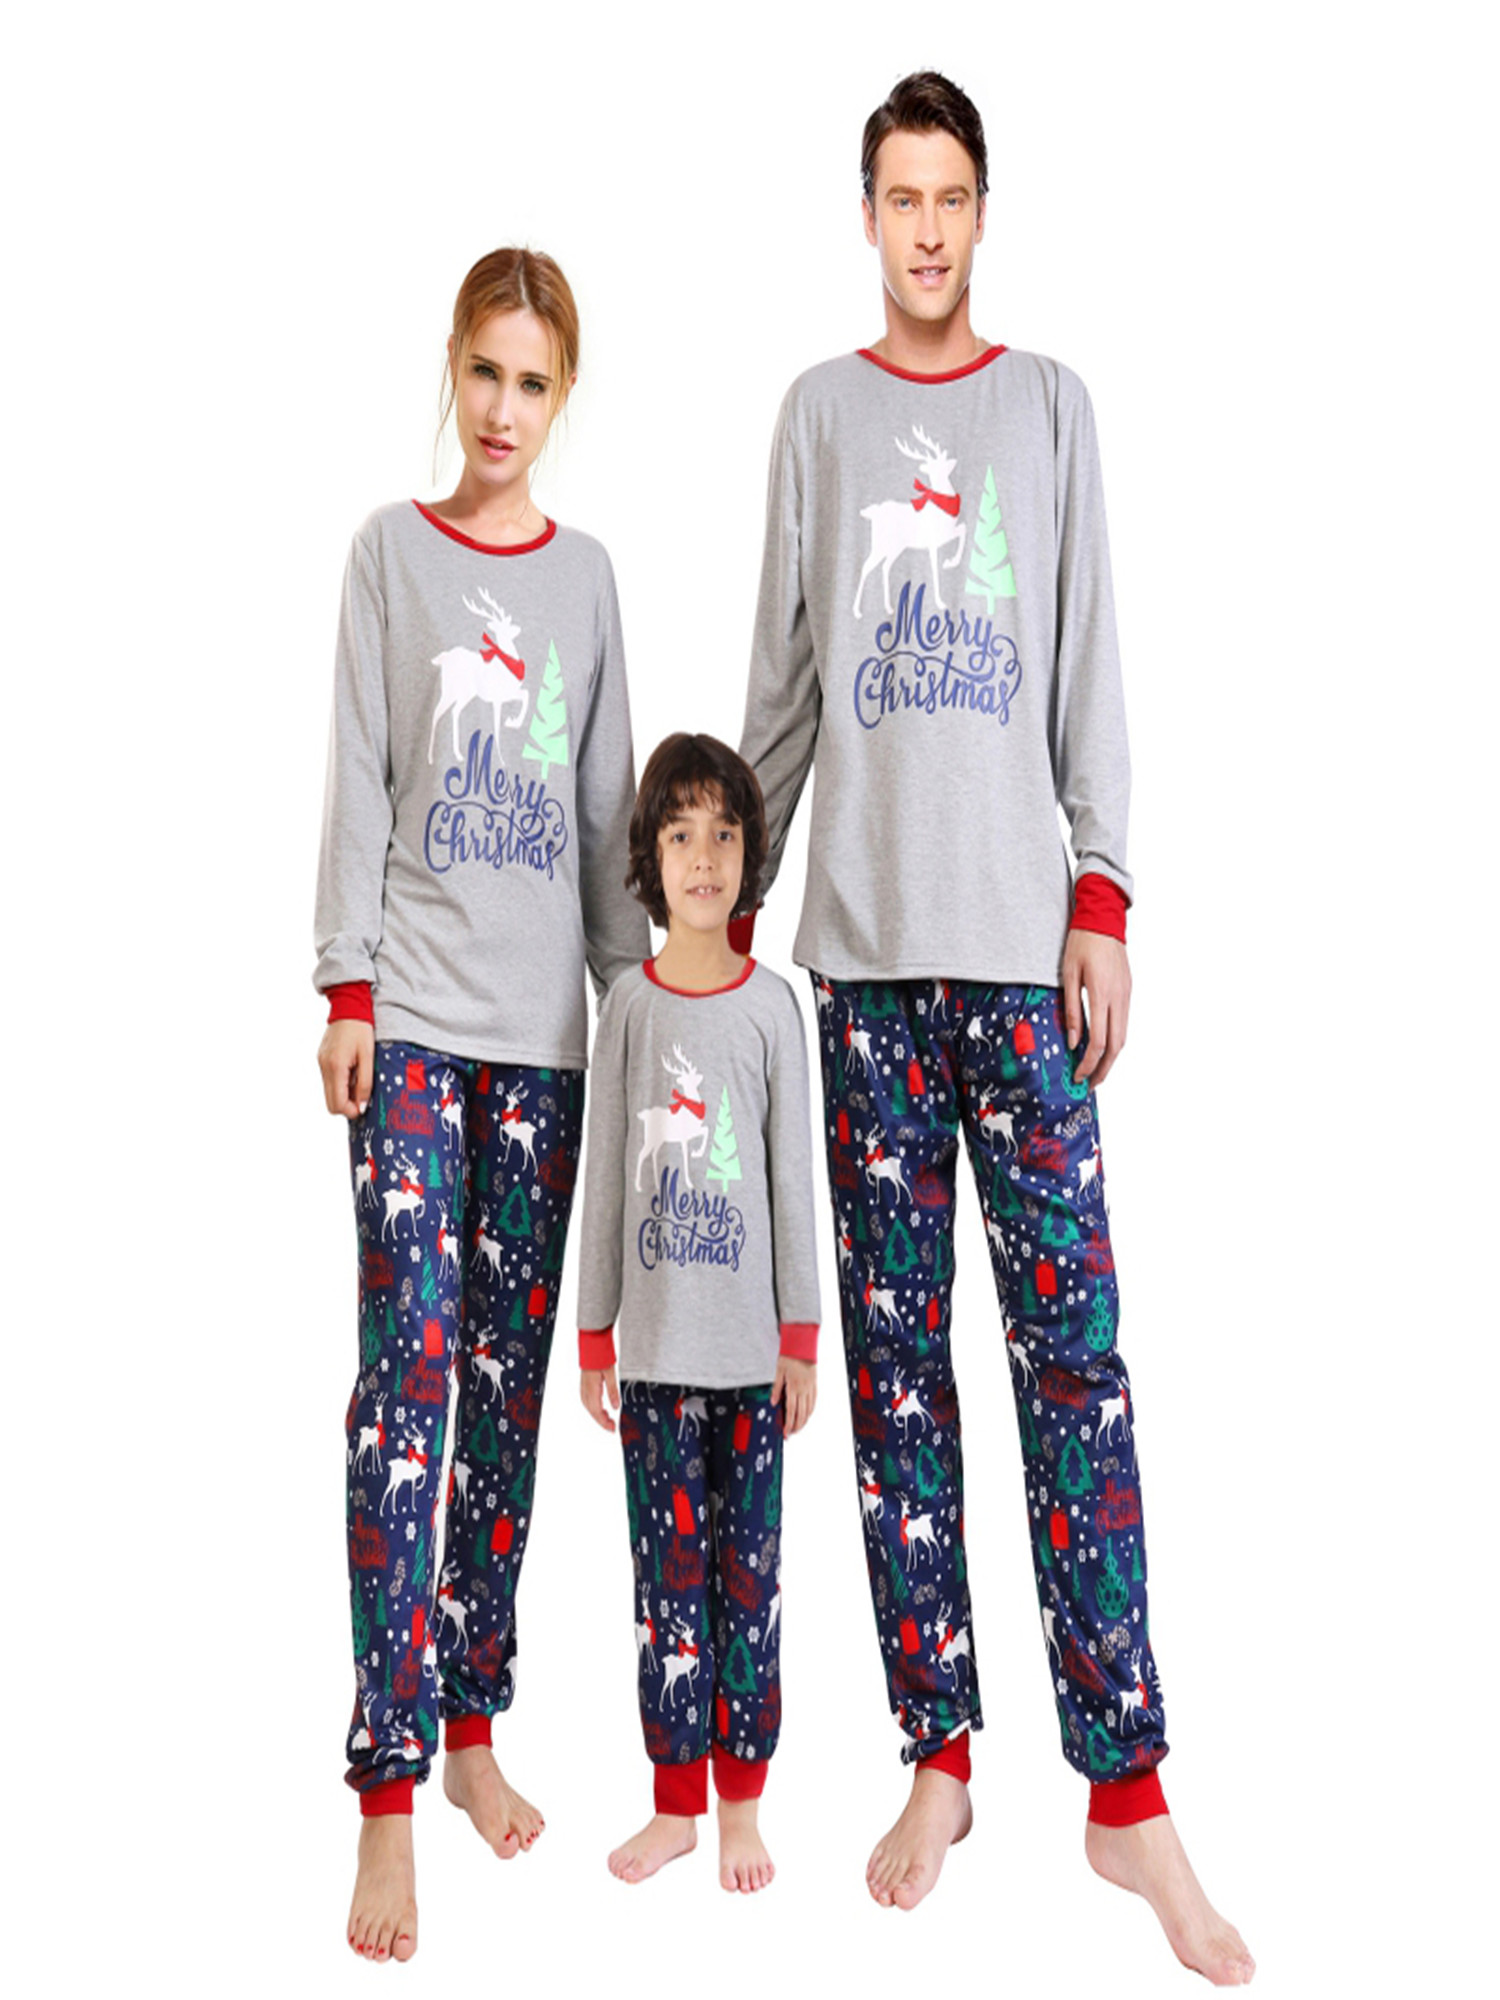 Details about  /Christmas Family Matching Pajamas Set Santa/'s Deer Sleepwear for The Family Boys